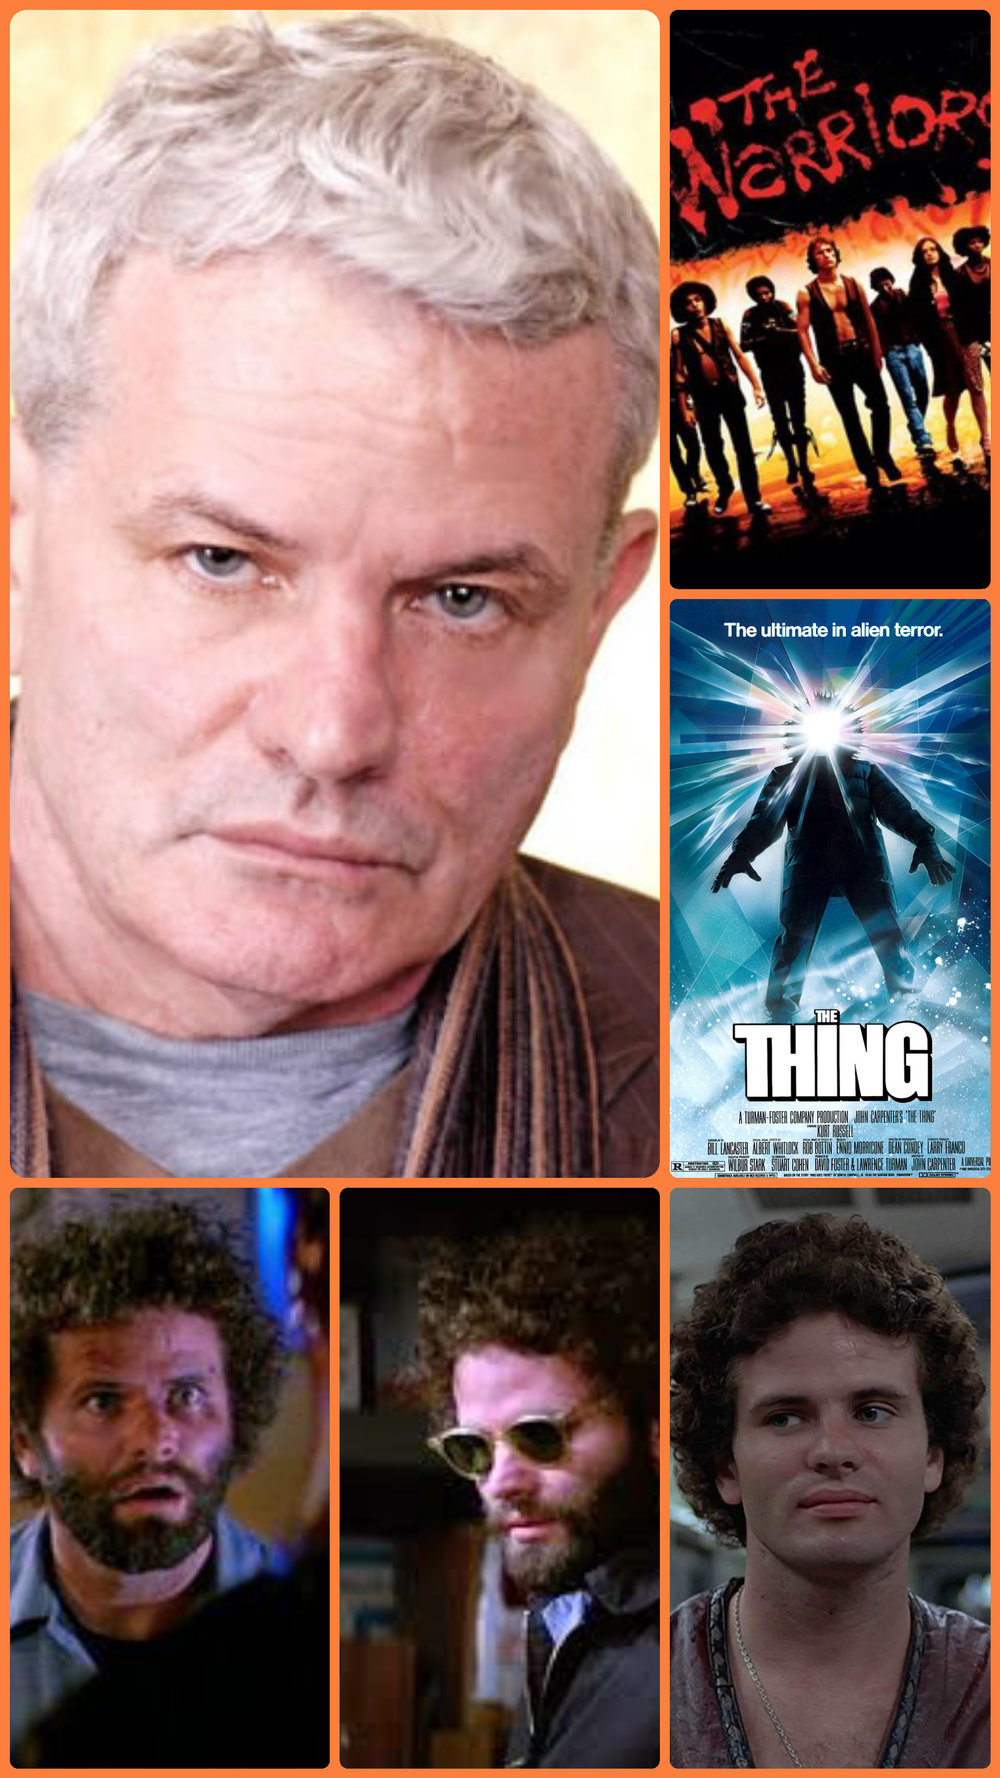 Thomas G Waites  The Thing/ The Warriors   - Thomas G. Waites (born January 8, 1955) is an American actor and acting instructor born in Philadelphia, Pennsylvania. Waites runs an acting studio in New York City which is named for him. He has been a member of the Actors Studio since 1984.